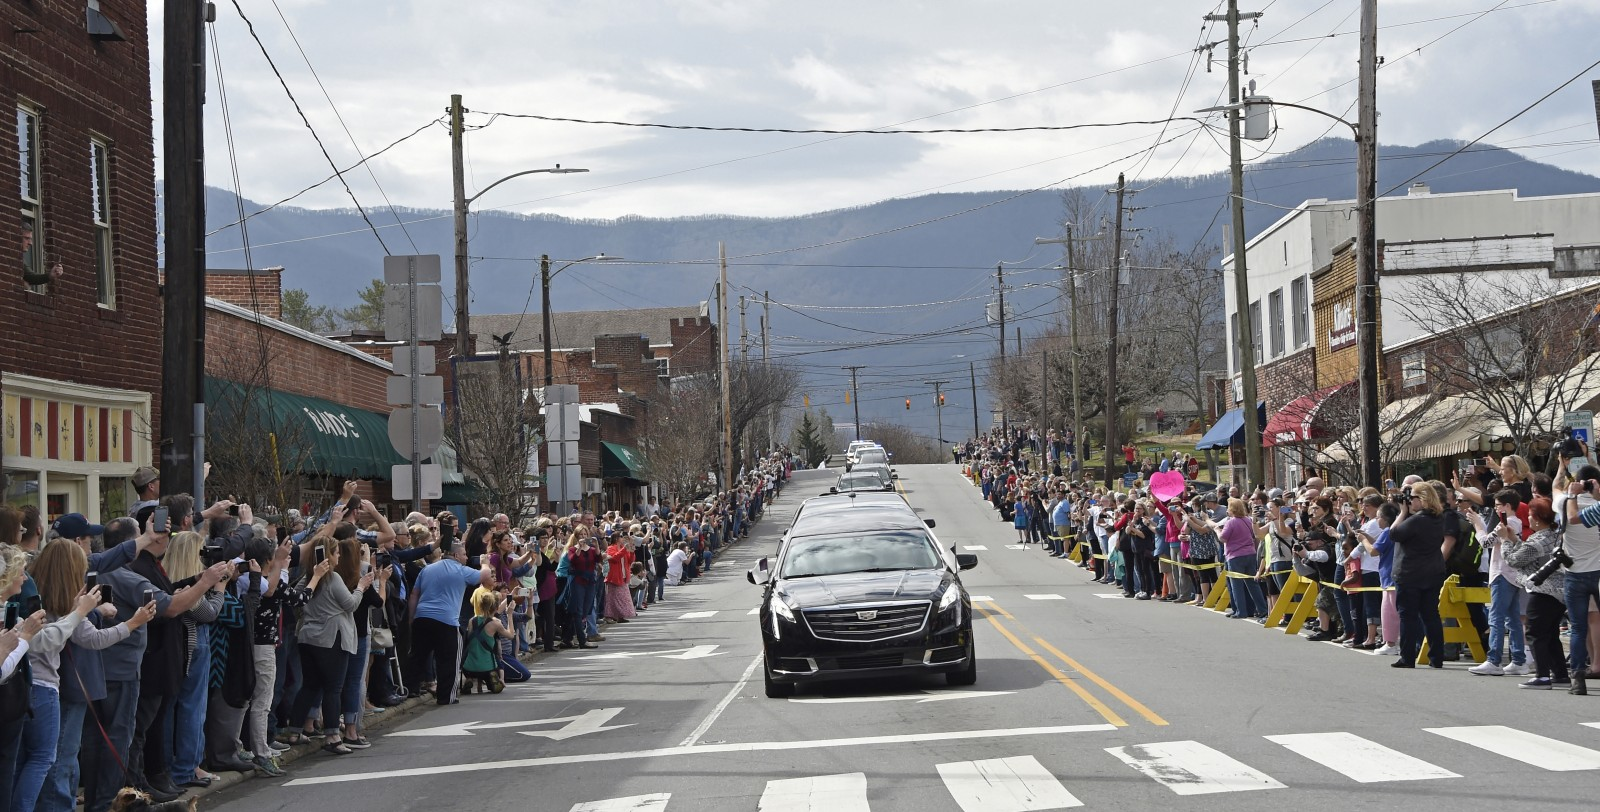 People line the street to pay respects as the hearse carrying the body of Rev. Billy Graham travels through Black Mountain, N.C., Saturday, Feb. 24, 2018. (Kathy Kmonicek/pool photo)